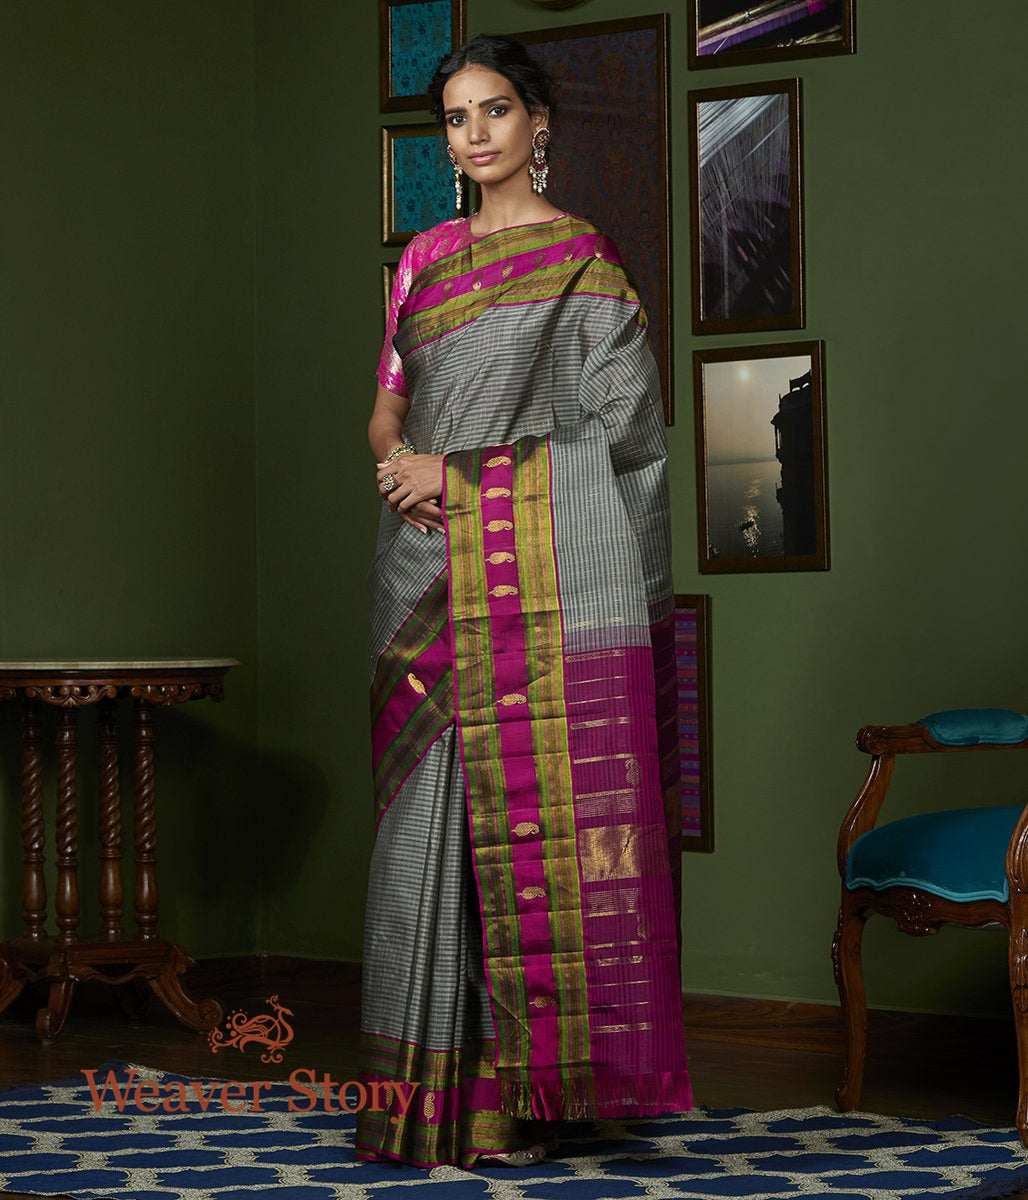 Handwoven Grey Kanjivaram Silk Saree with Zari Checks and Purple Border with Paislesy